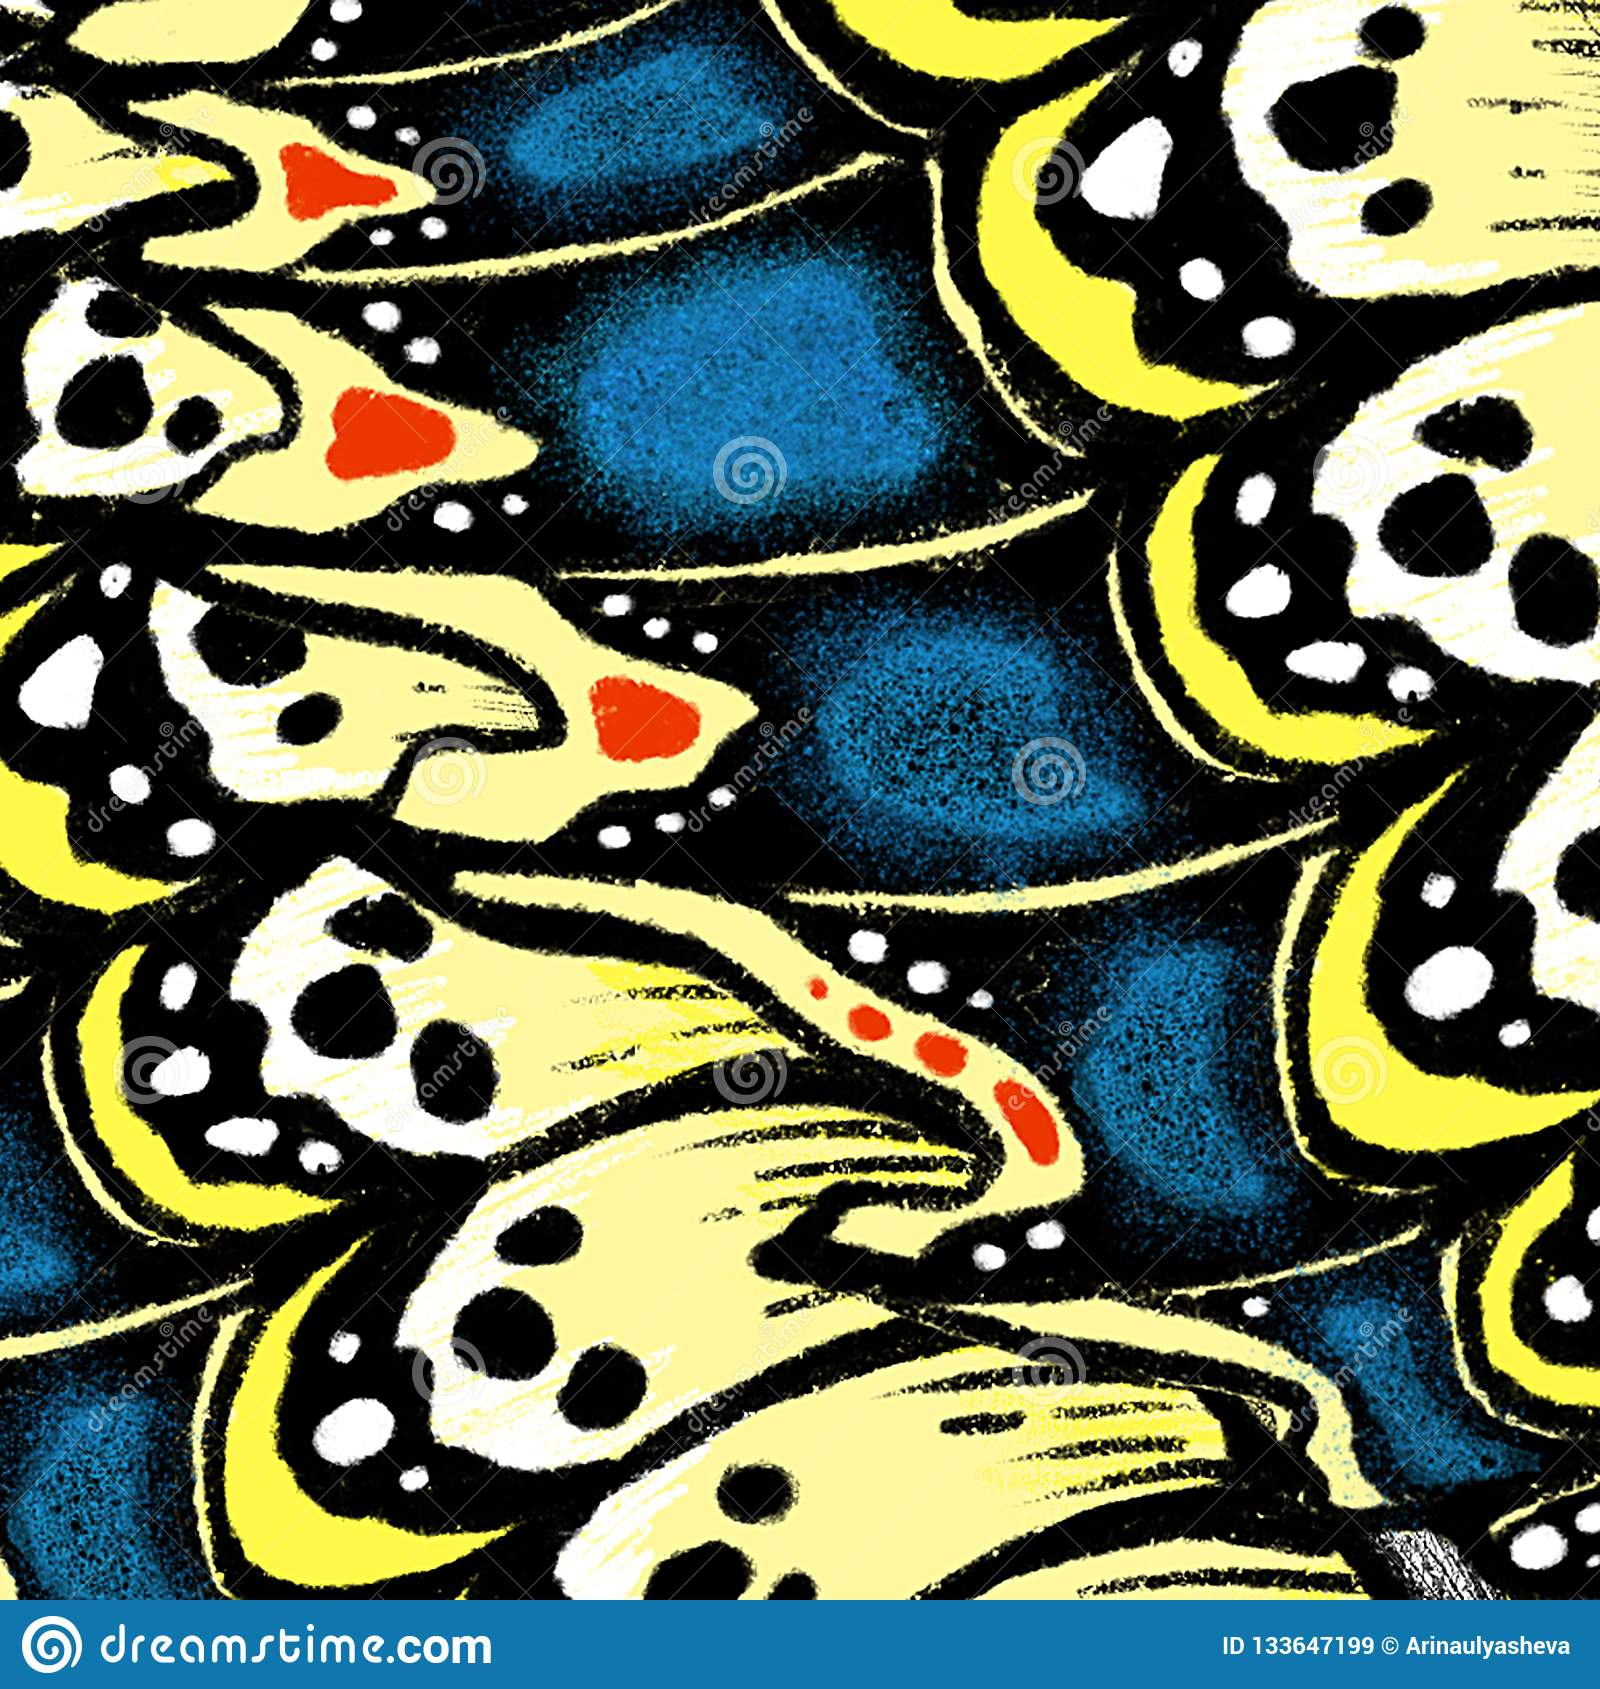 Butterfly wings background with textures and details. Macro painting details